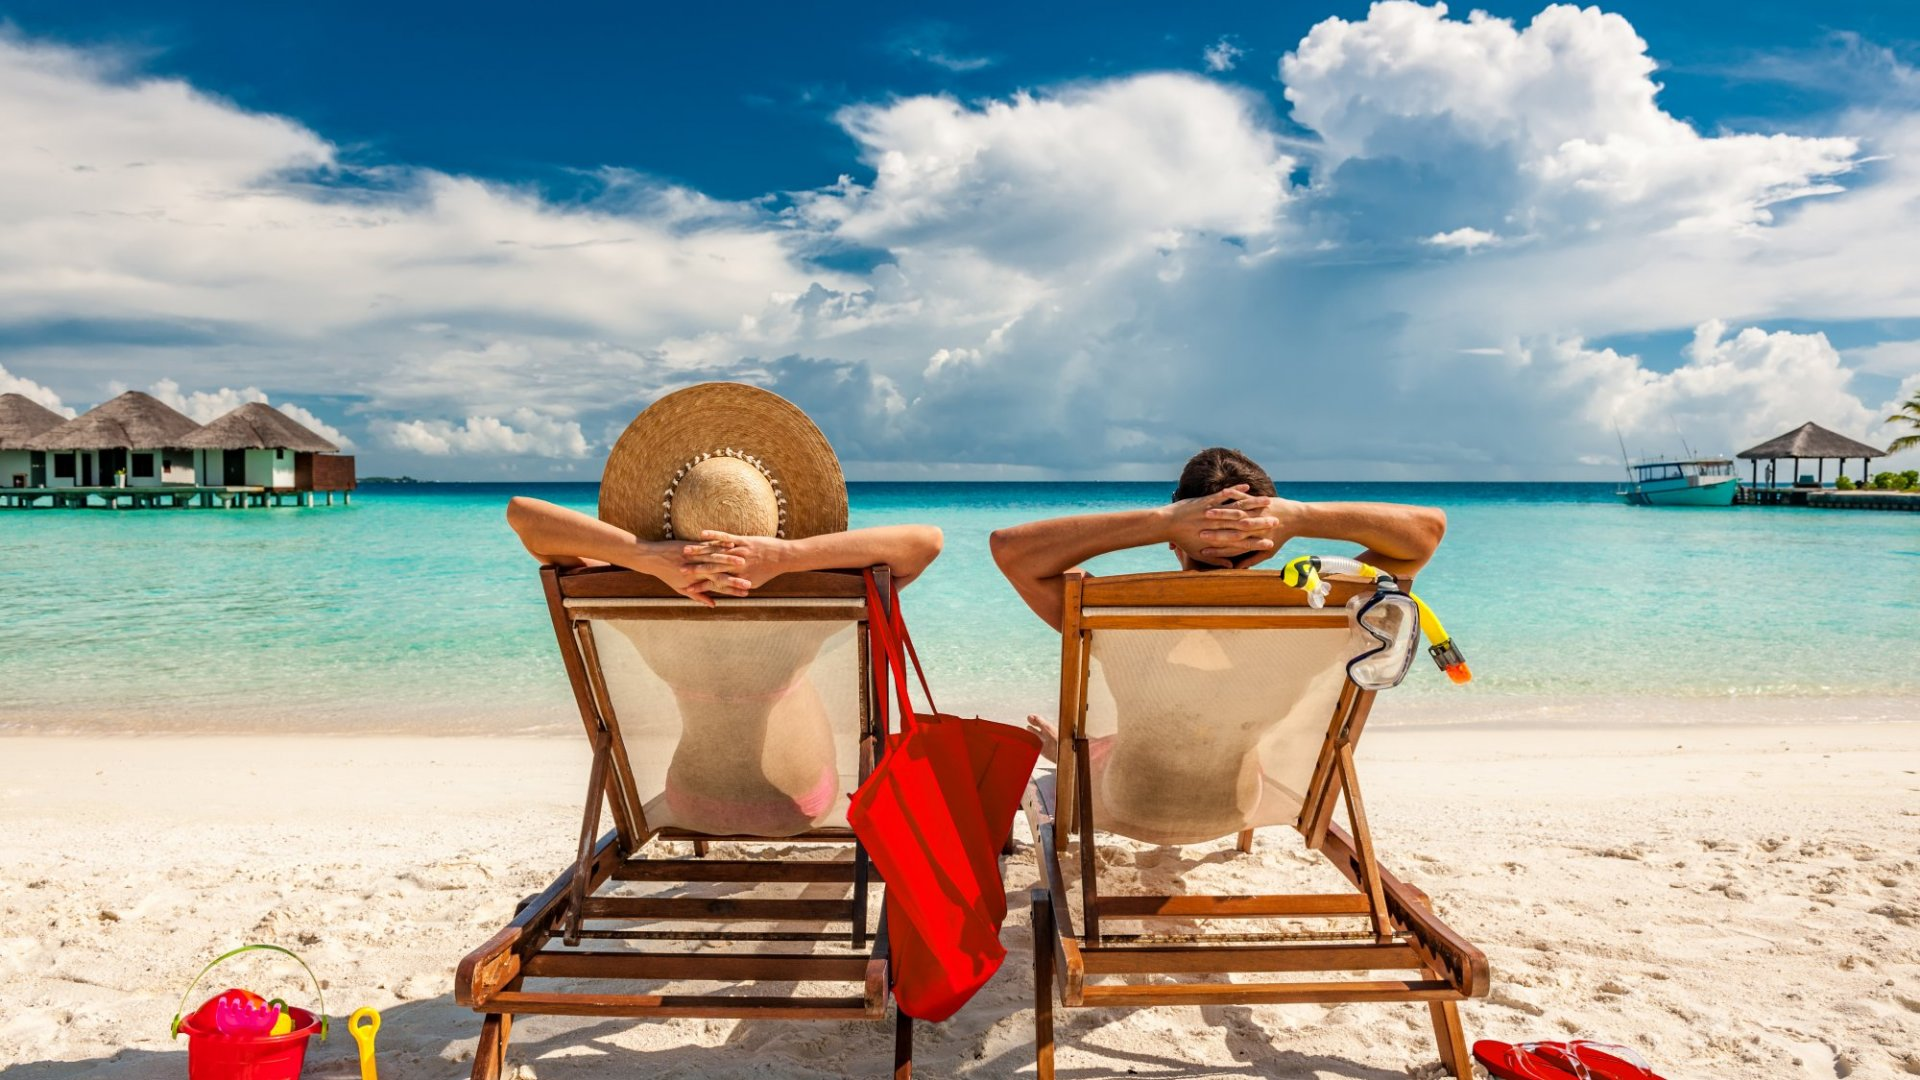 Shouldn't You Make It Easier for Your Employees to Cash Out Their Unused Vacation Time?